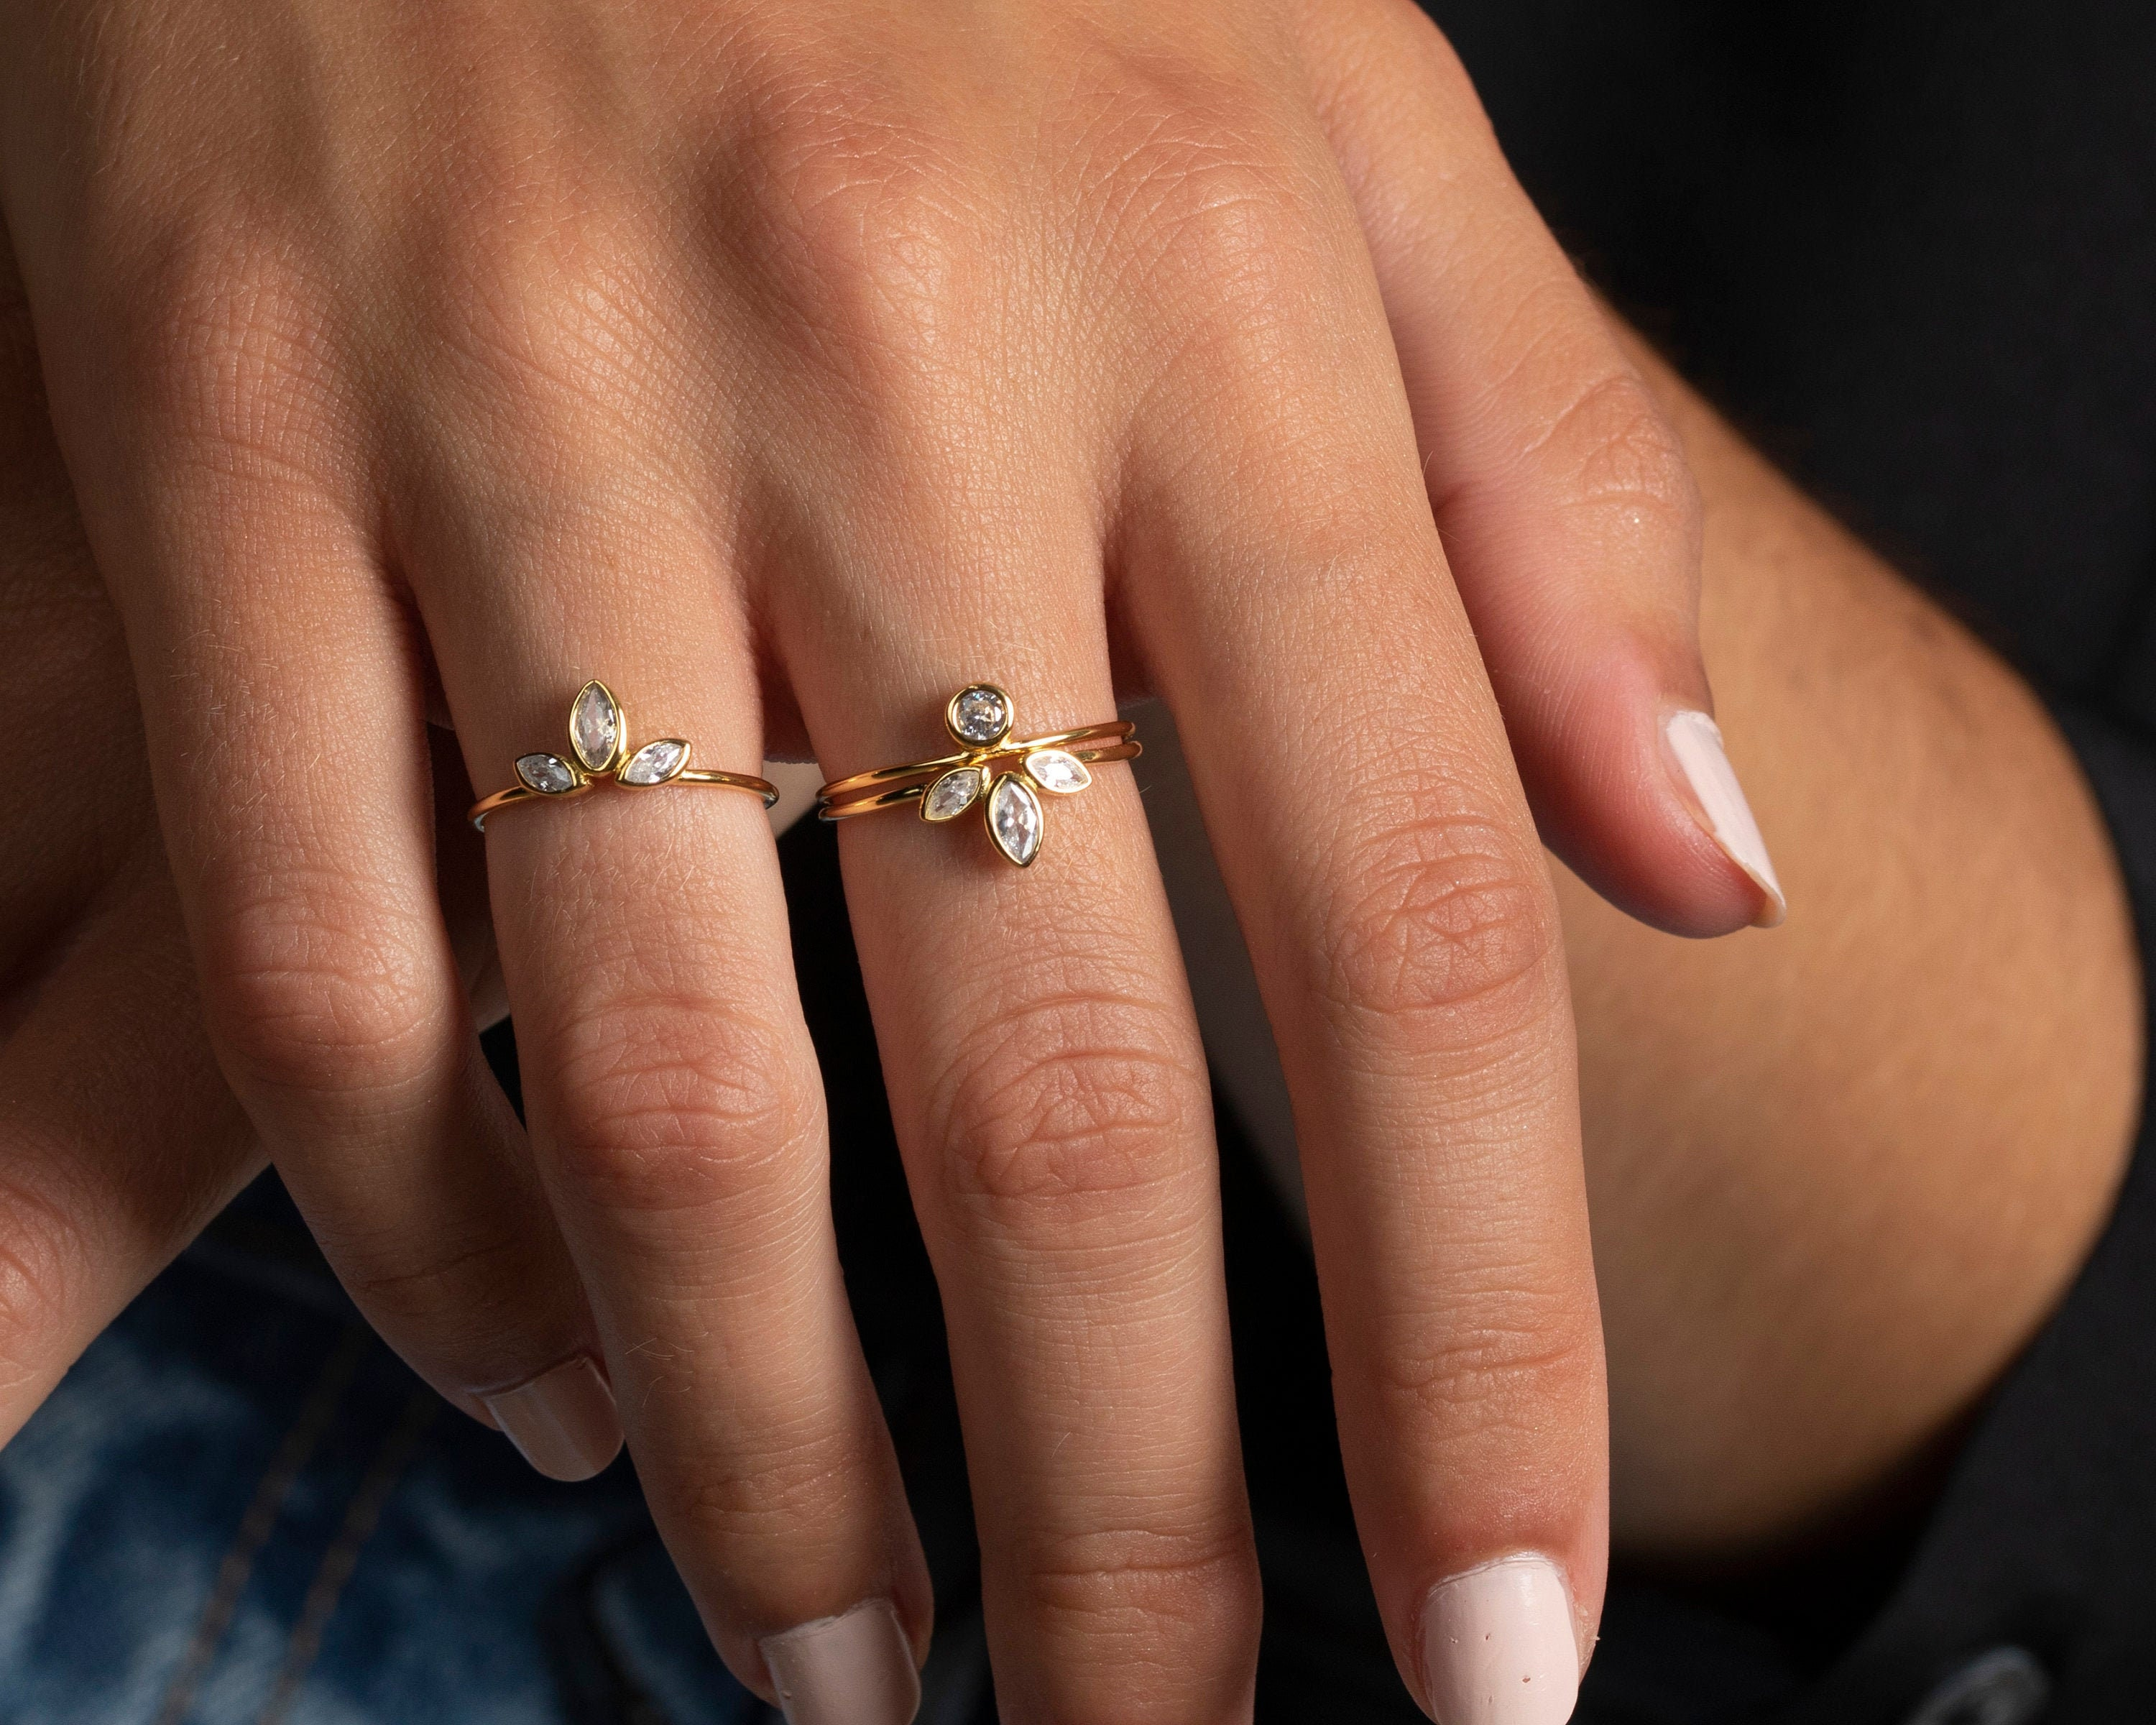 Crystal ring Statement ring Minimalist jewelry Stacking ring Band ring Thin gold ring Cz Stackable ring Dainty ring Minimalist ring